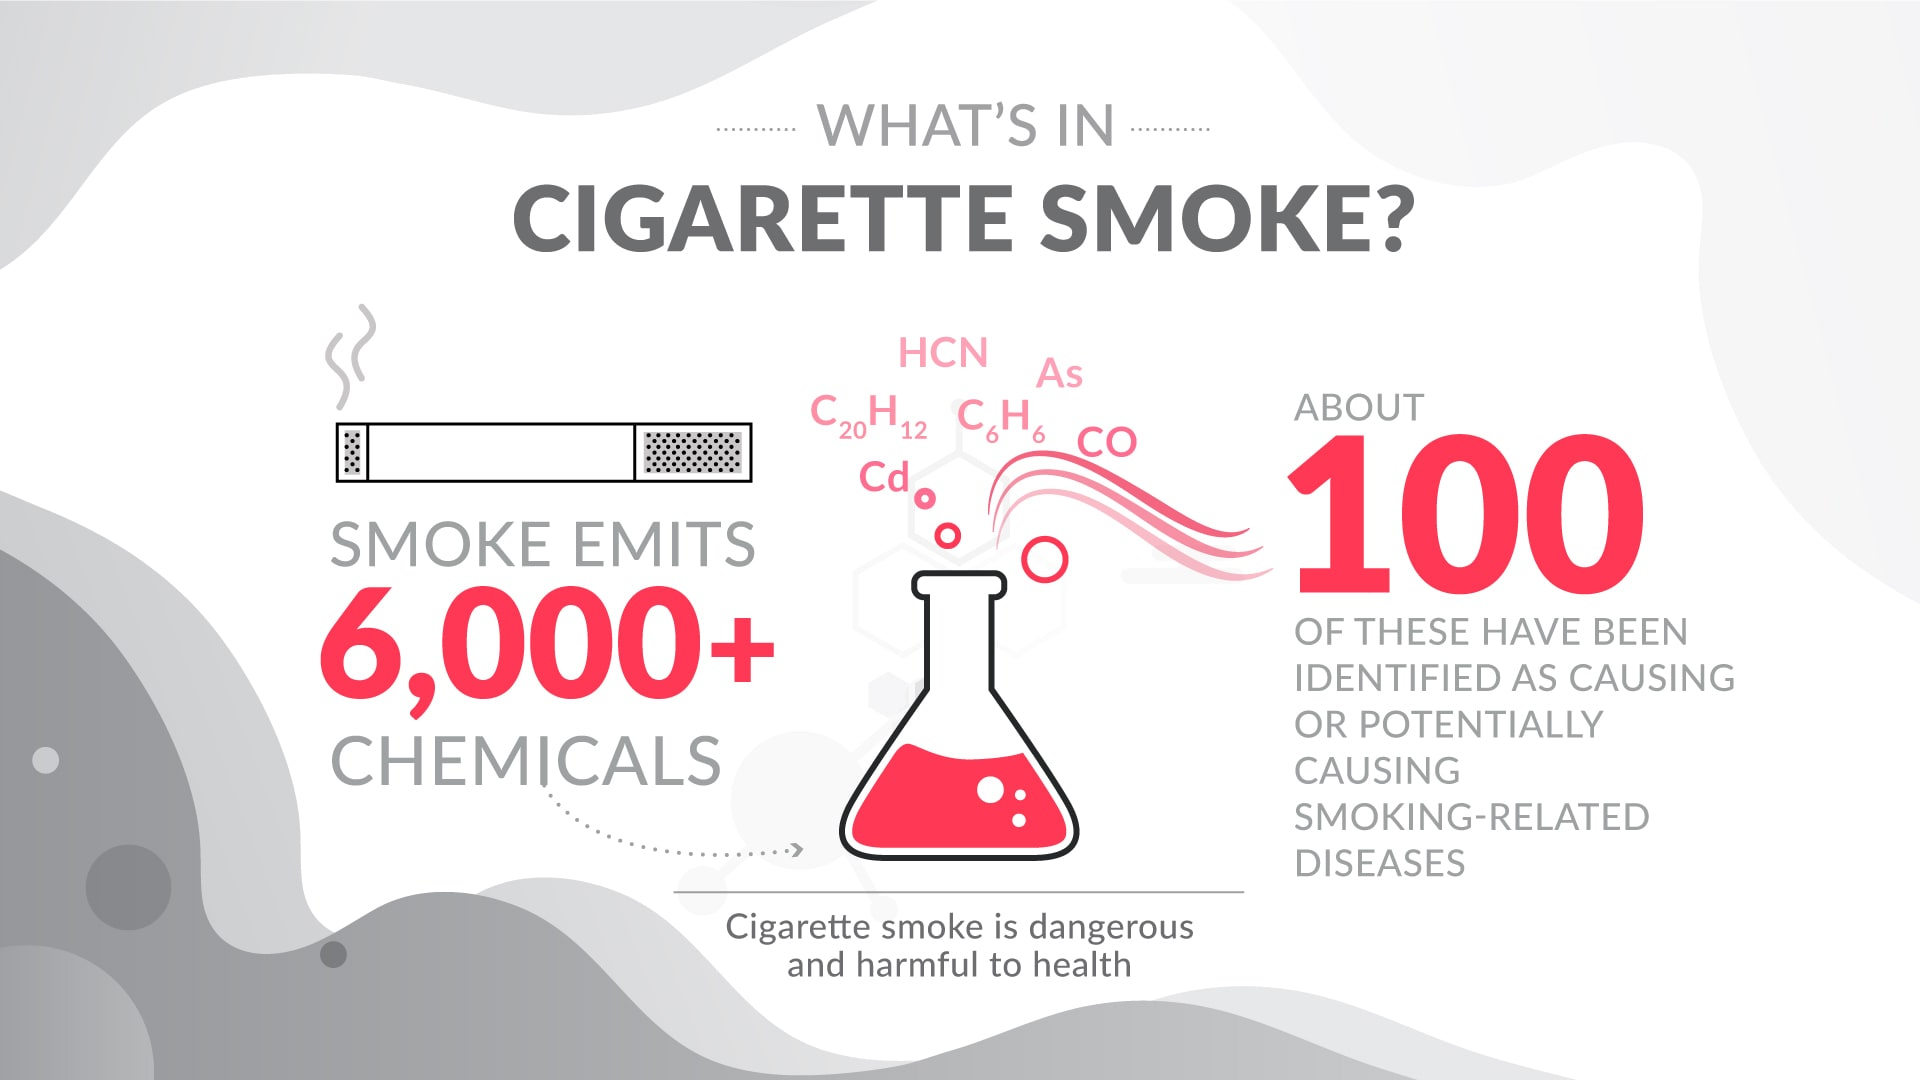 PMI-Corporate---Combustion---Whats-in-a-cigarette-smoke---infographic---June-2020